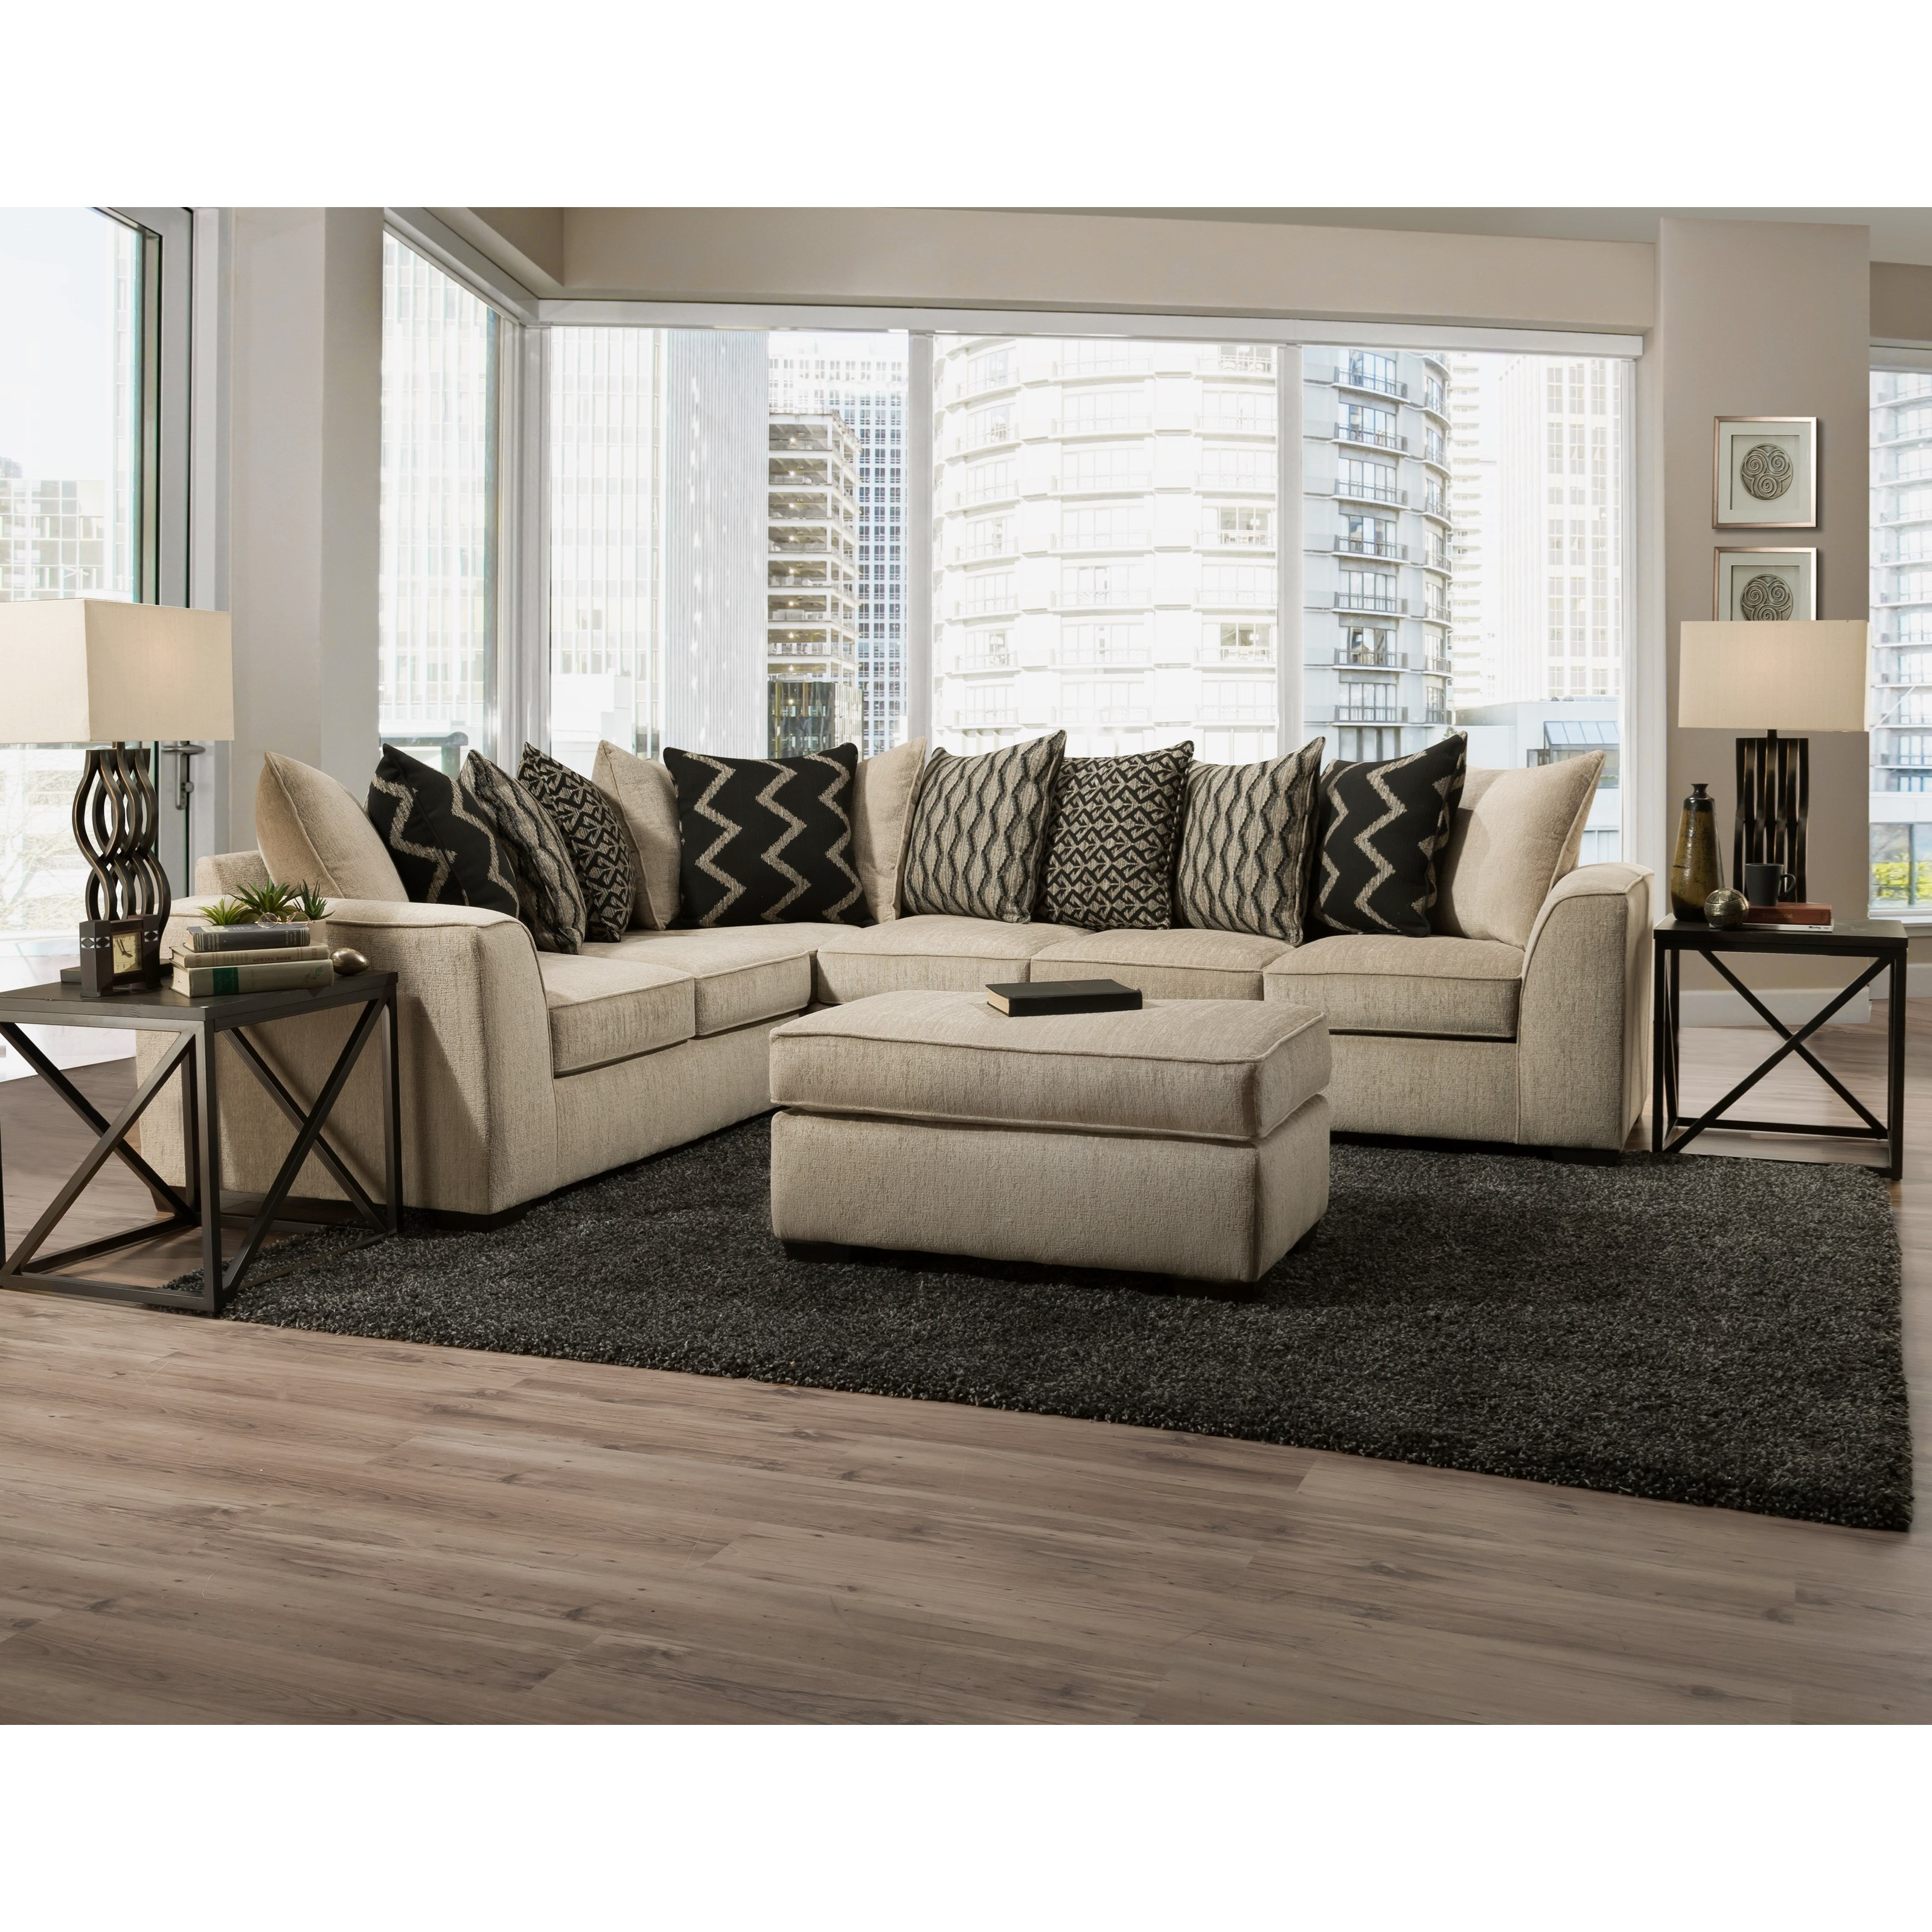 2600 2-Piece Sectional by Peak Living at Prime Brothers Furniture